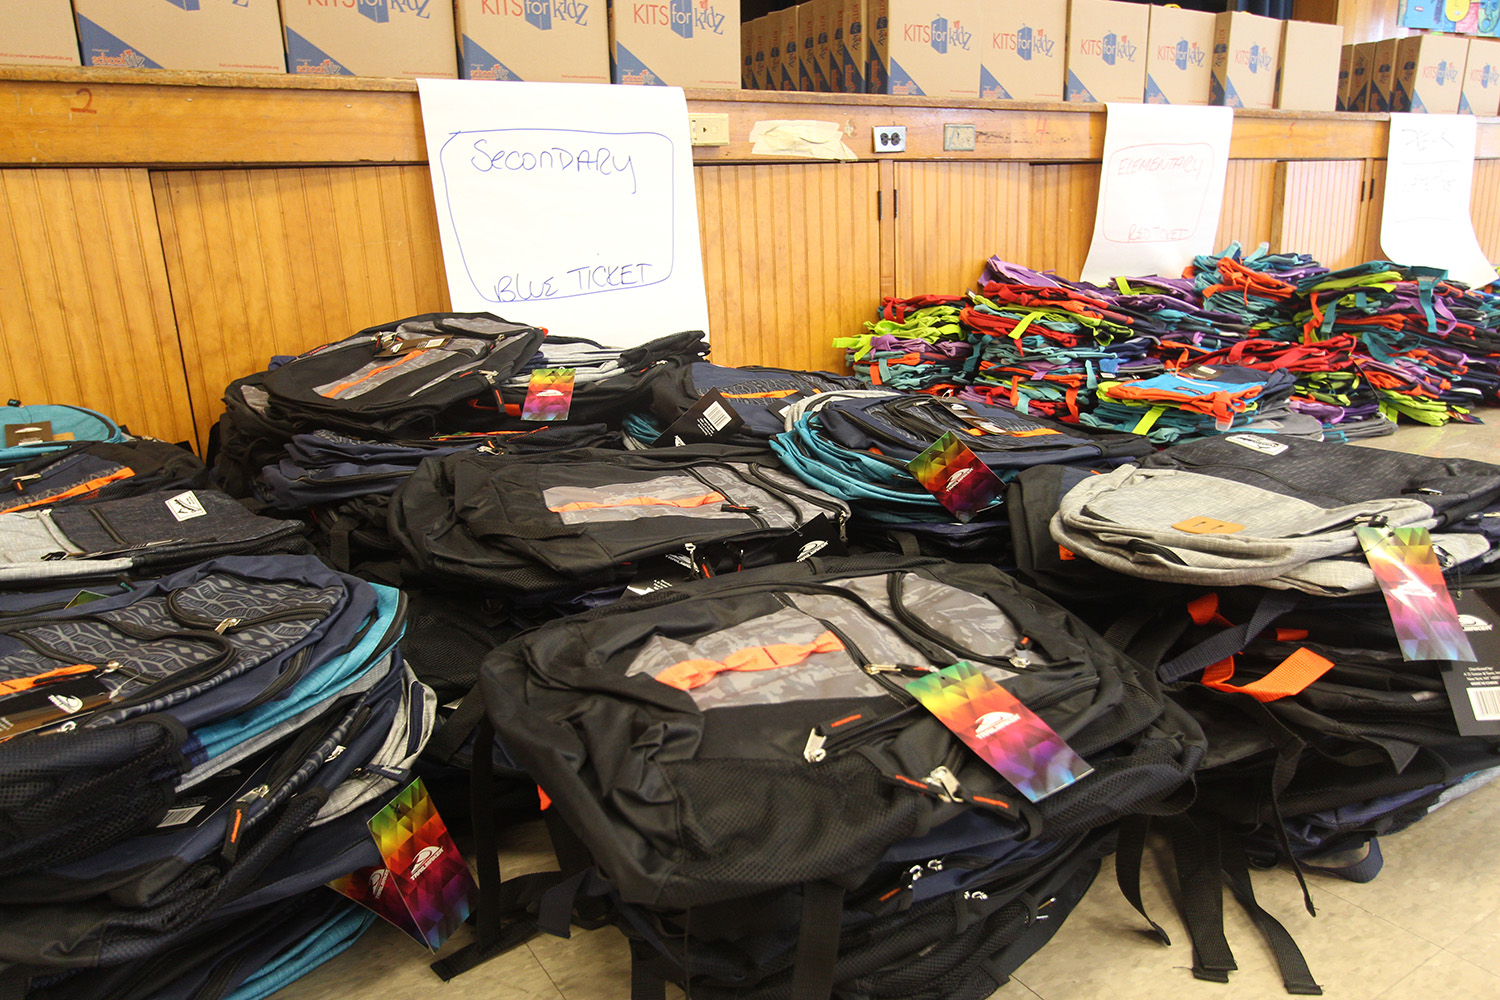 Backpacks are stacked up and ready to distribute.